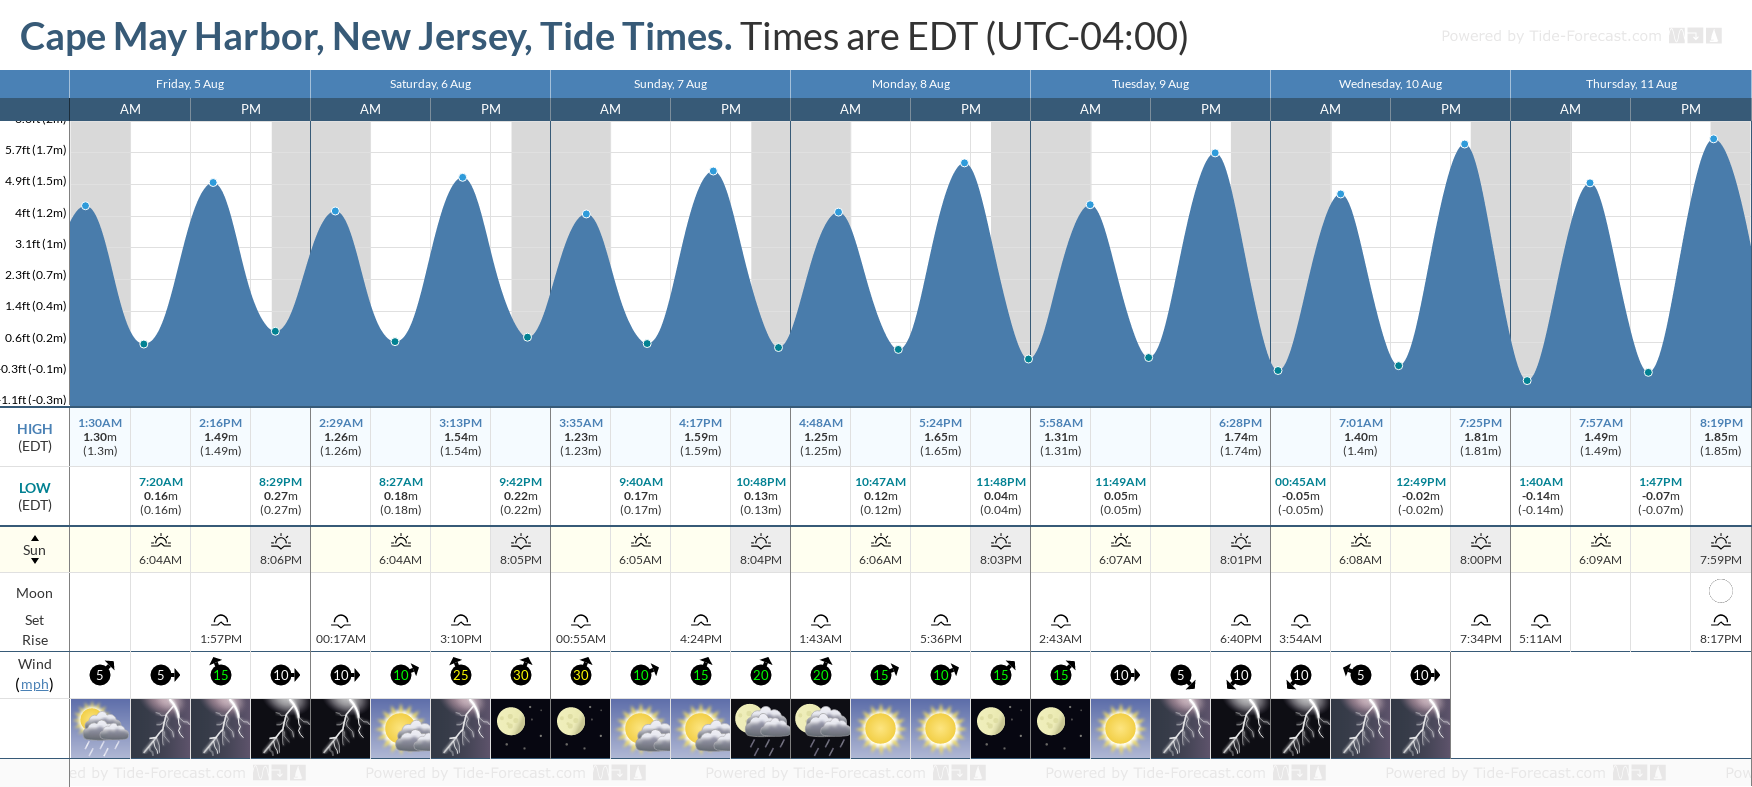 Cape May Harbor, New Jersey Tide Chart including high and low tide tide times for the next 7 days